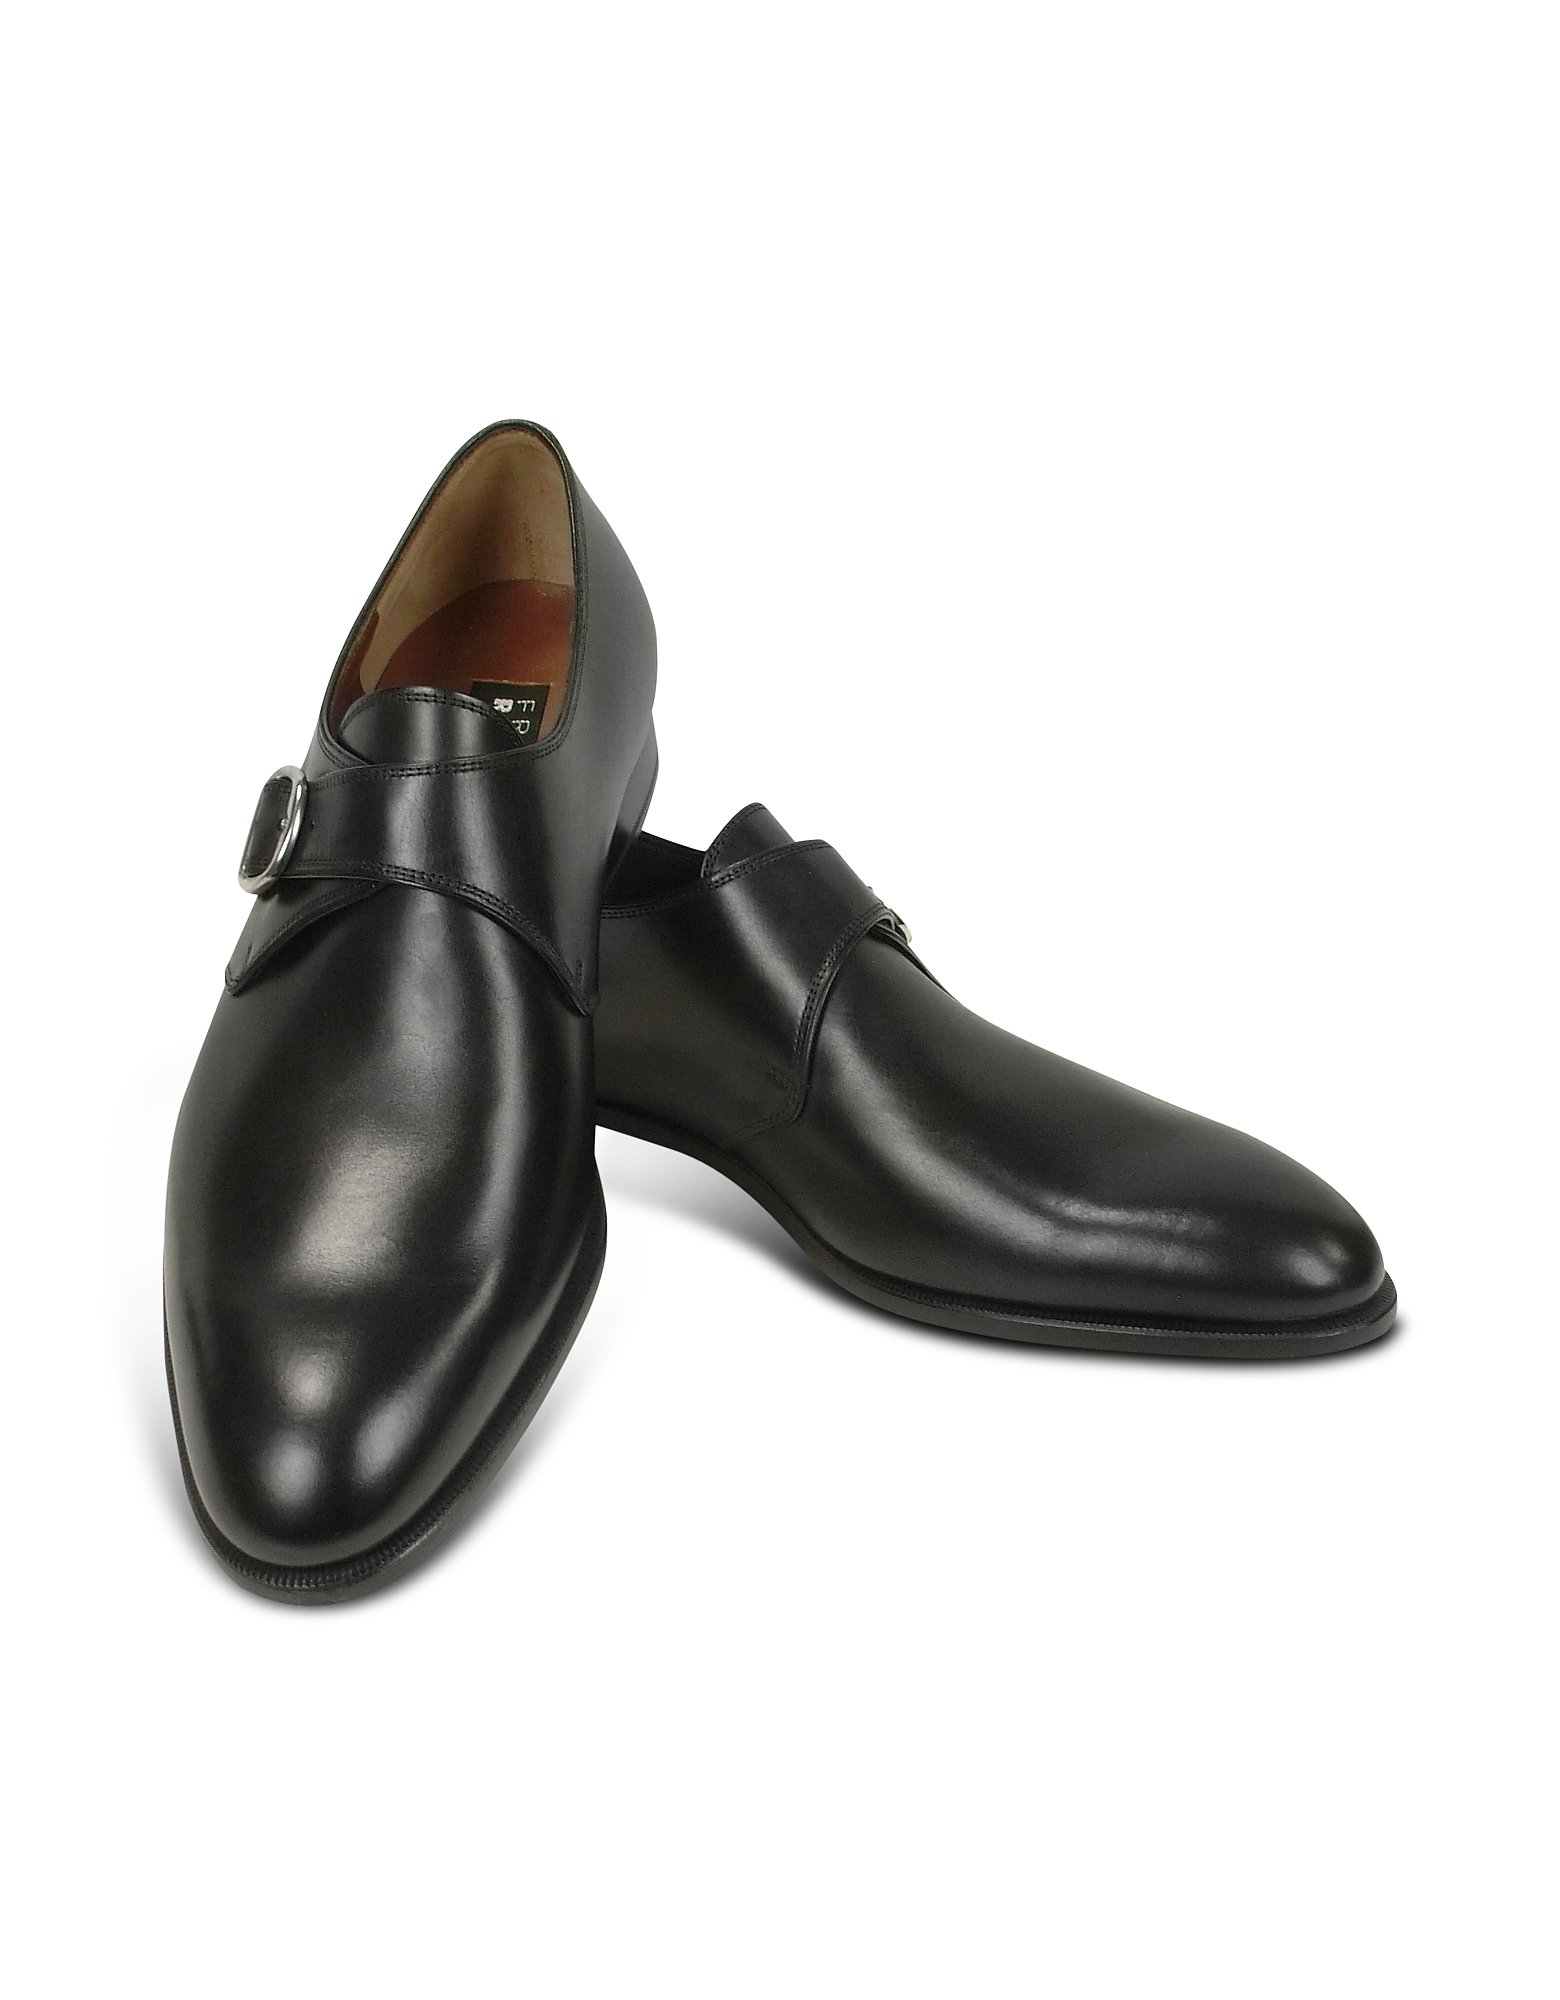 Fratelli Rossetti Shoes, Black Calf Leather Monk Strap Shoes